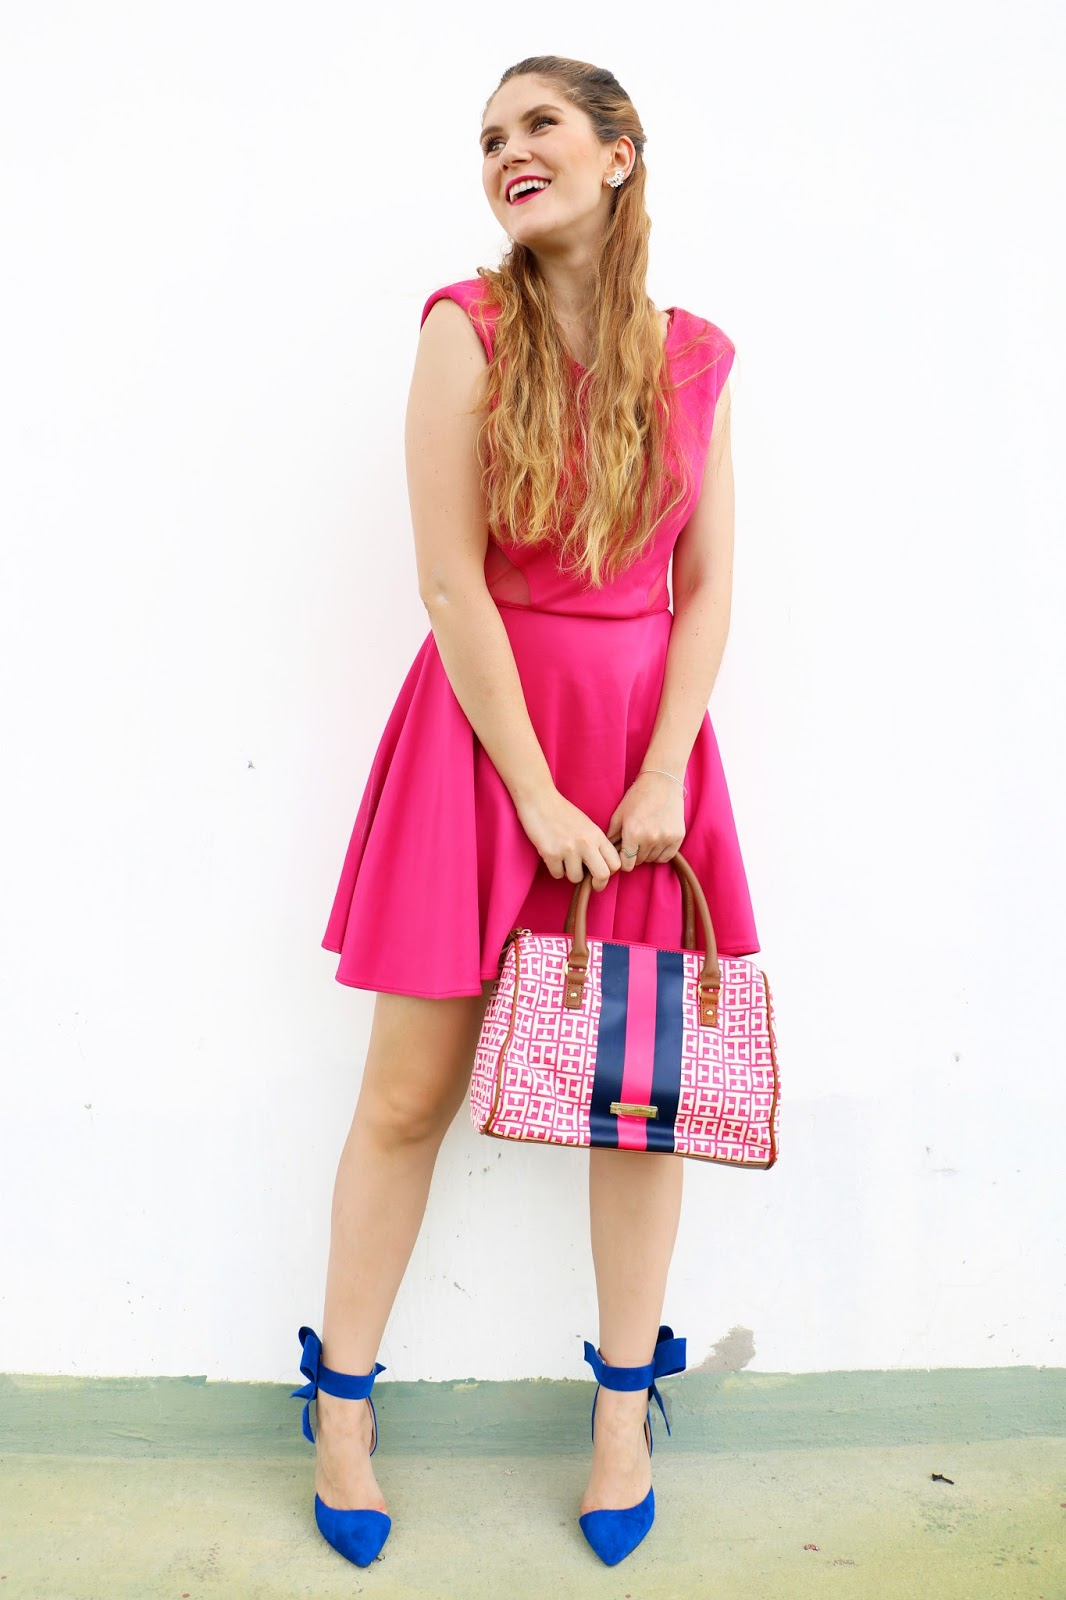 Combine a bright pink dress with an equally bright pair of shoes to make a colorful Summer outfit!